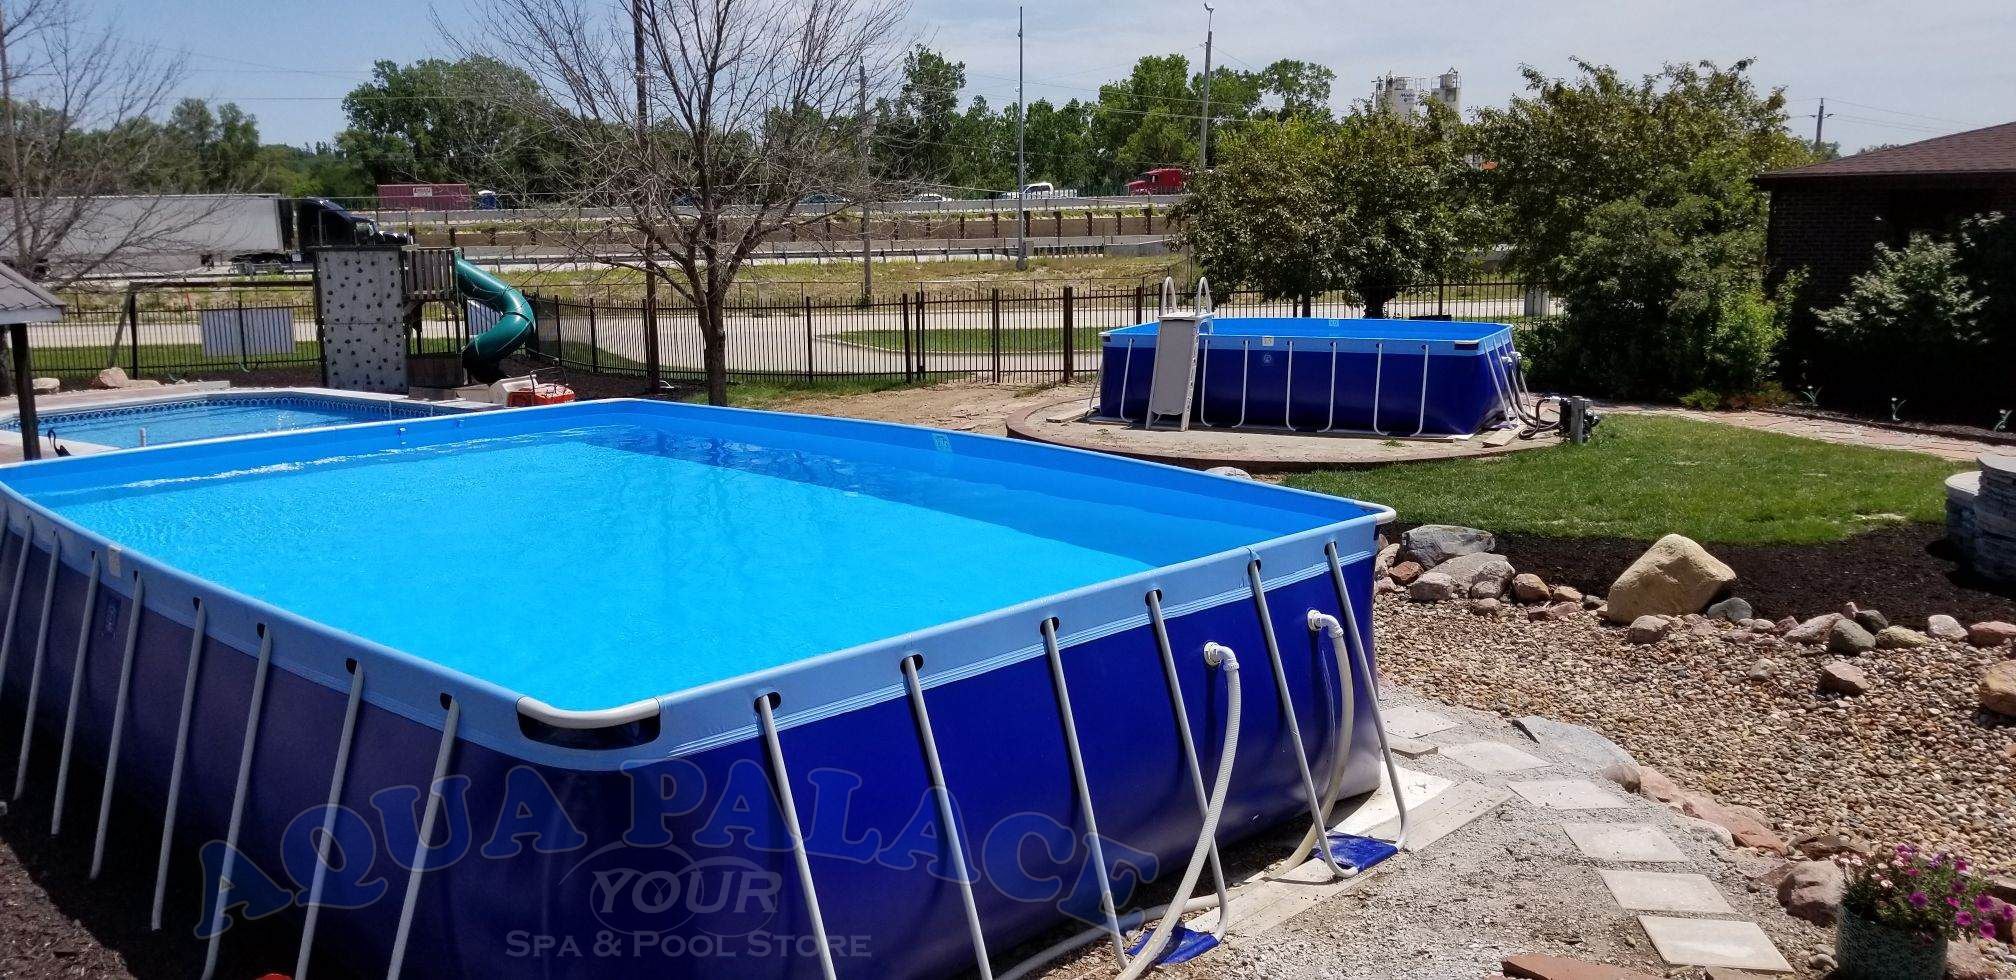 Our 1 Acre Outdoor Showgarden Is A Wonderful Way To See Many Different Pools Styles Sizes That Are Available Pool Swimming Pools Spa Pool